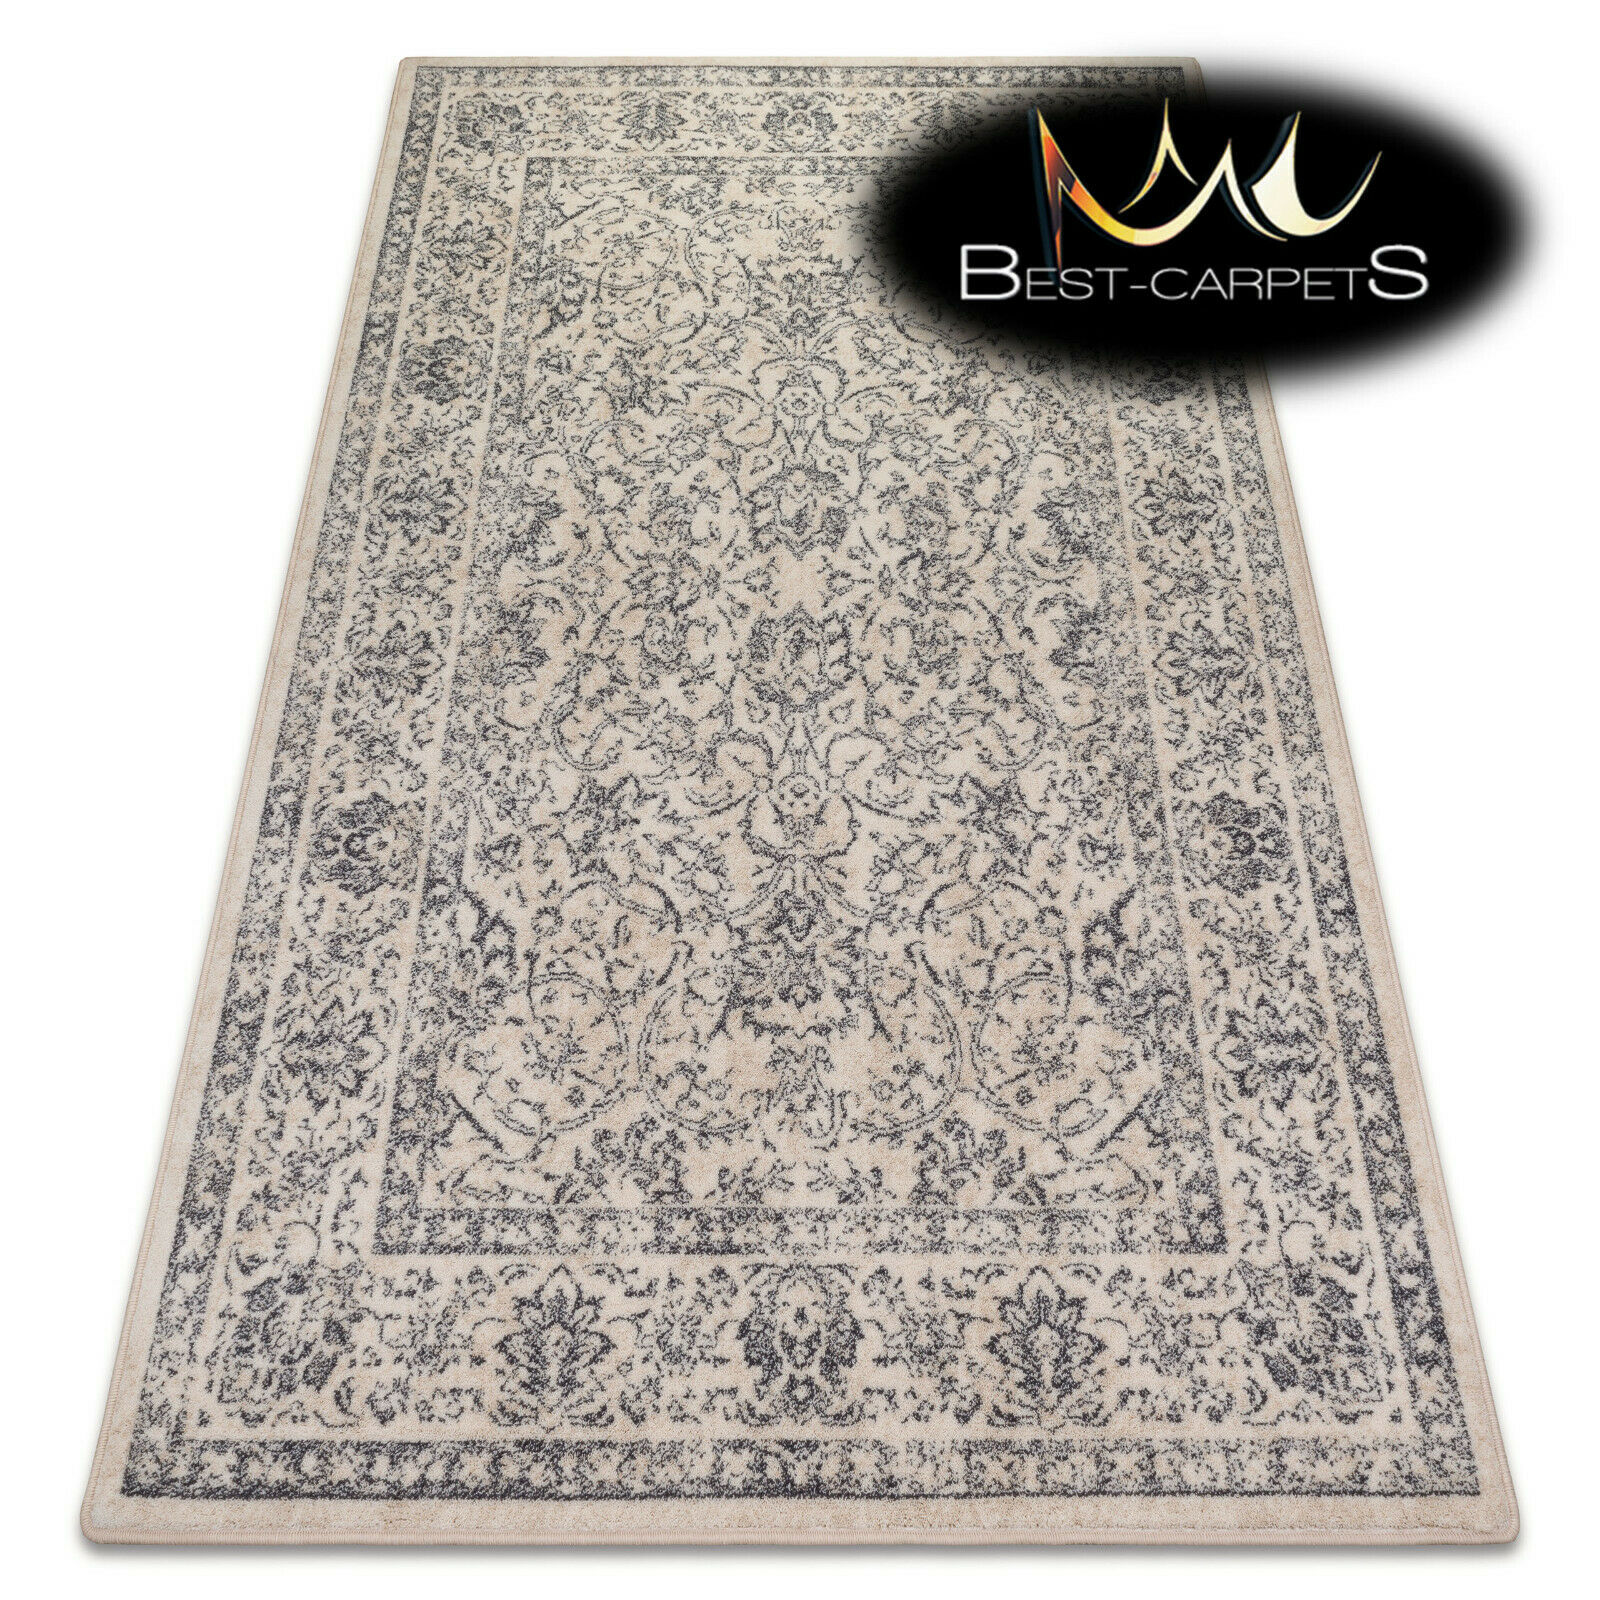 AMAZING NATURAL WOOL RUGS Temion Flowers cream modern designs  Beste carpets